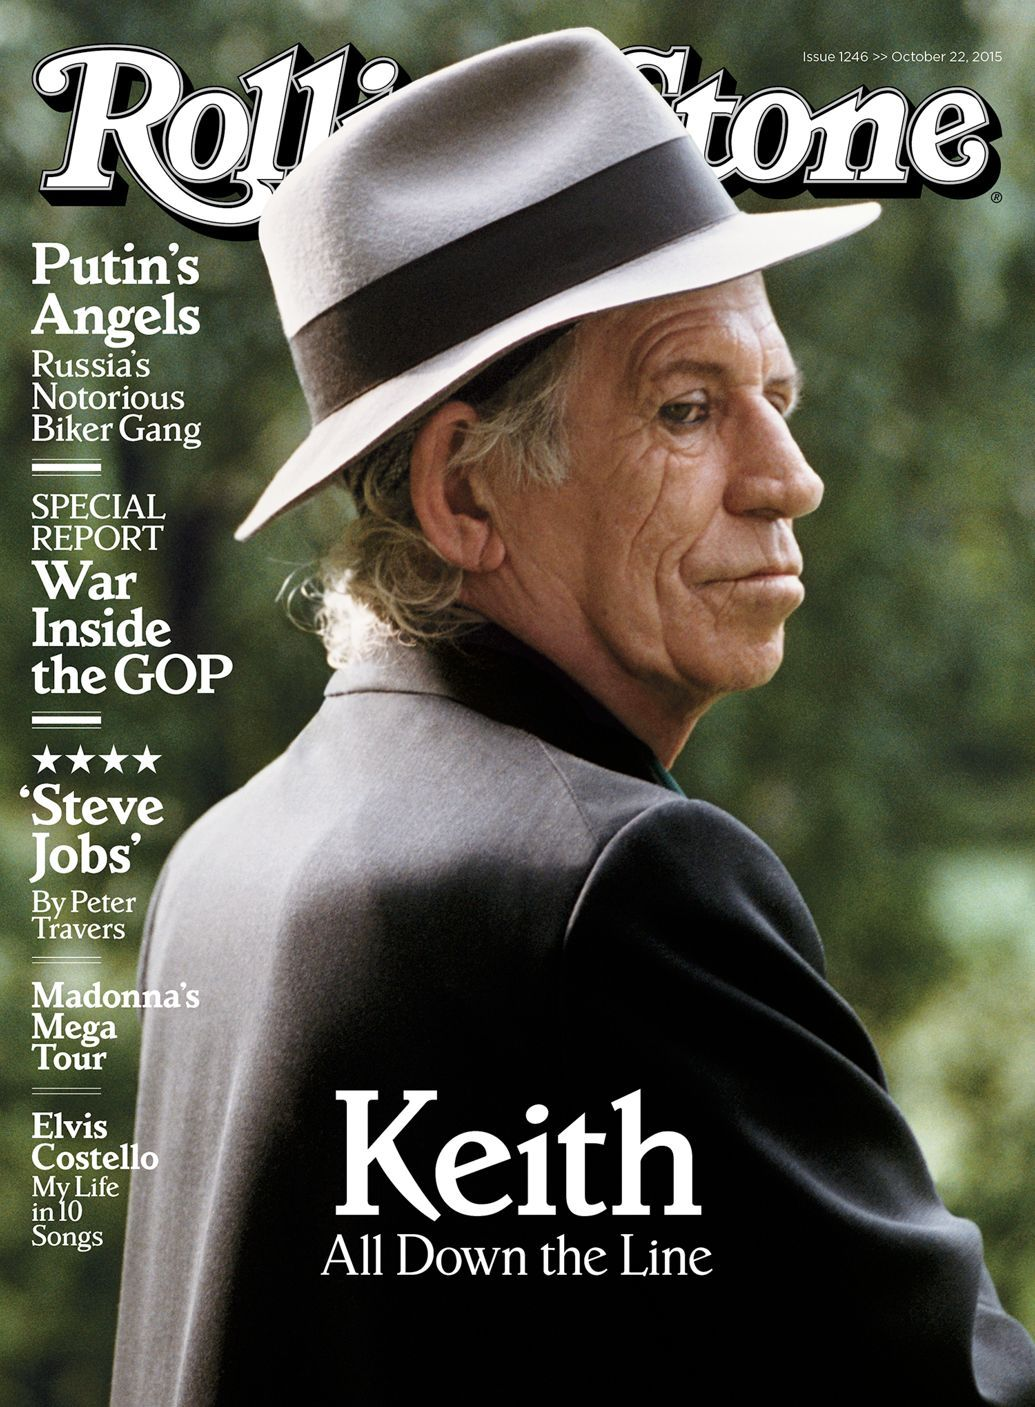 Keith Richards on the cover of Rolling Stone October 22, 2015